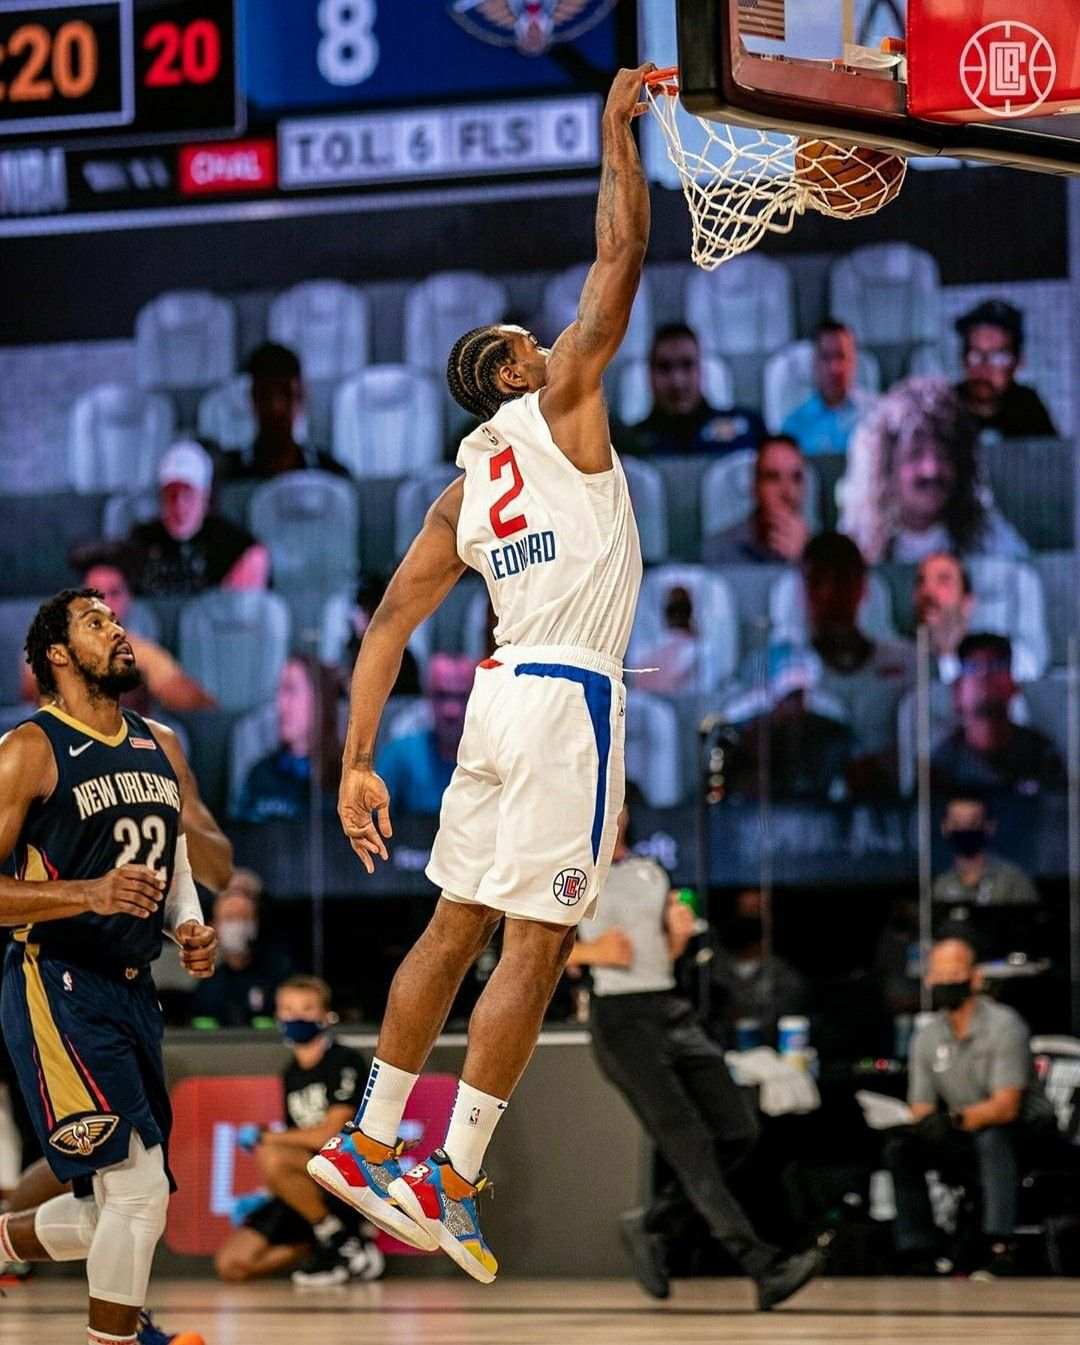 Kawhi With The Dunk In 2020 Basketball Highlights Sports Jersey La Clippers